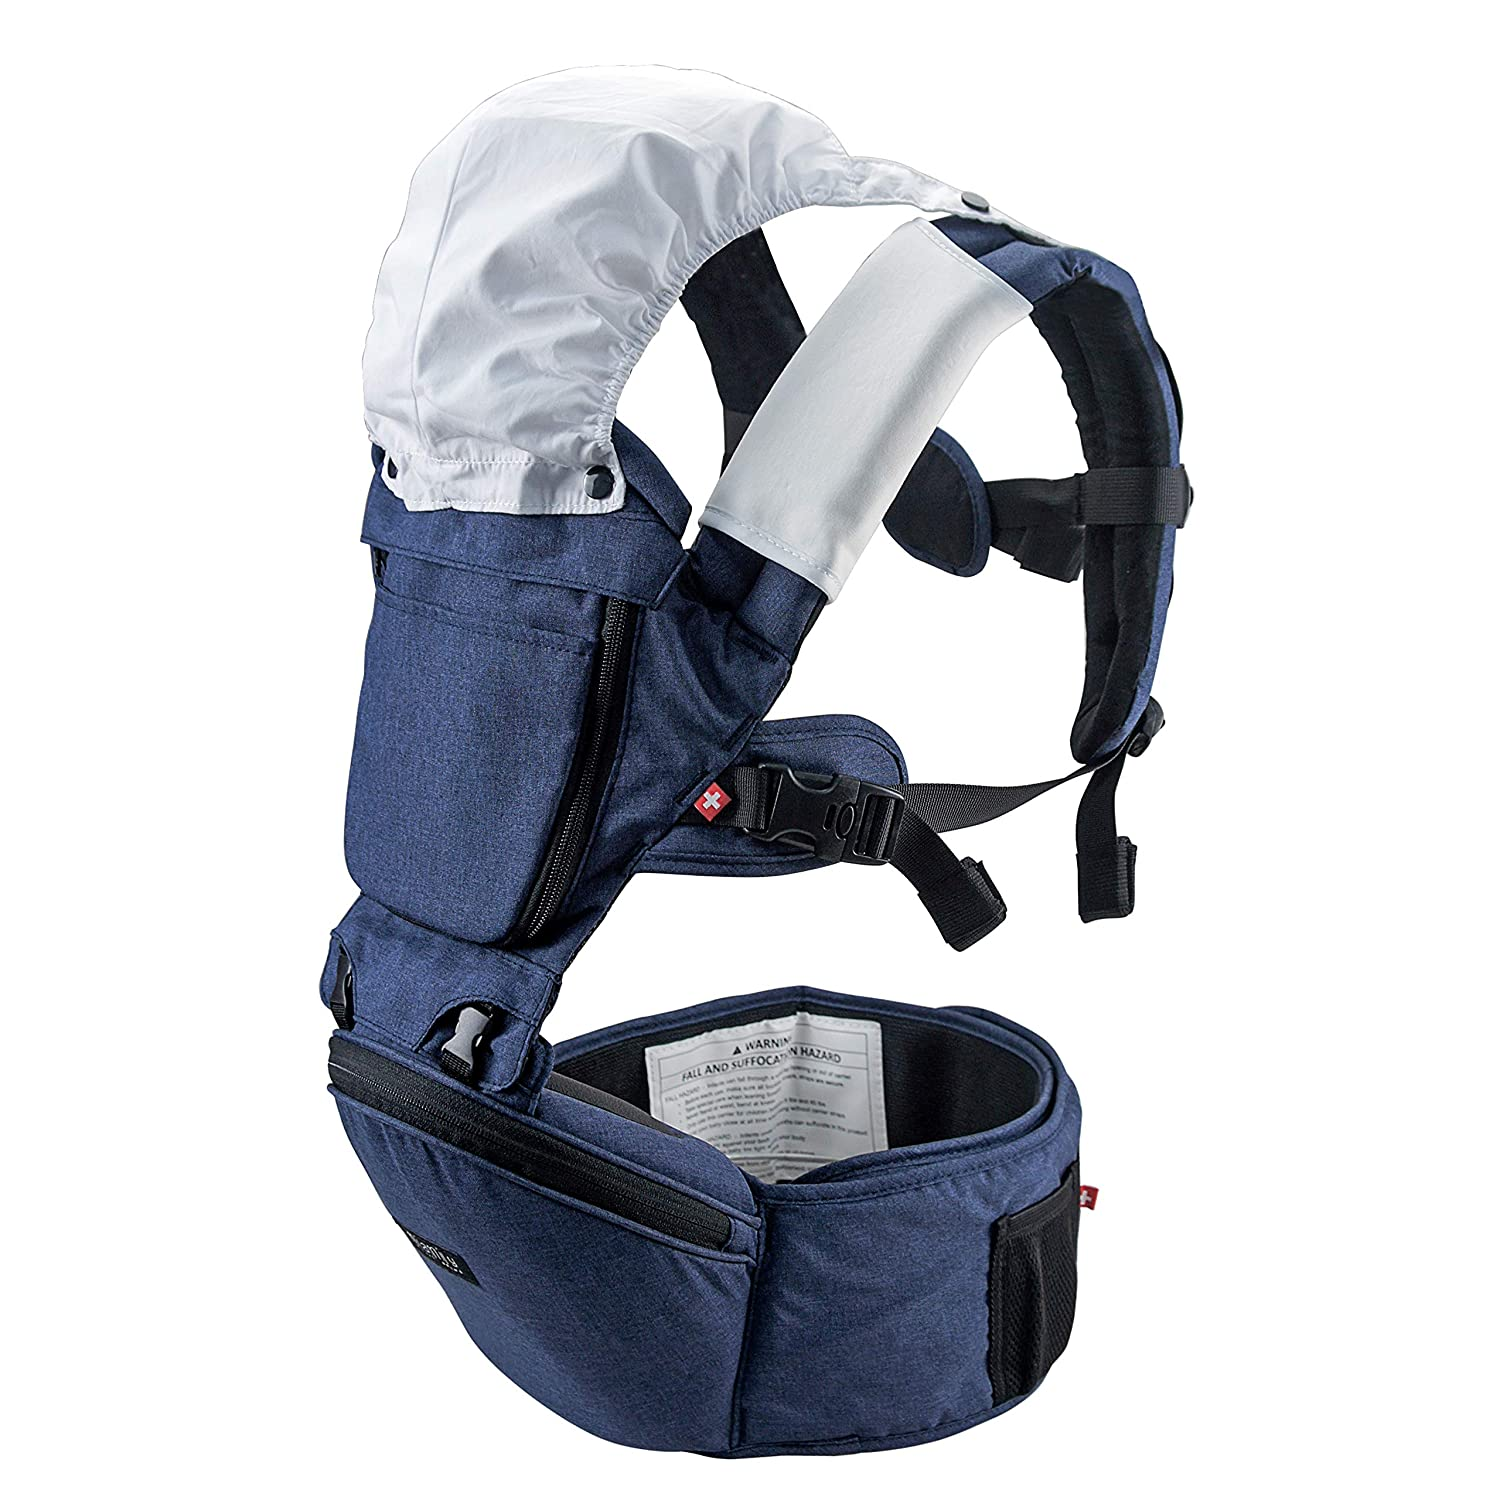 7eb1847c265 Amazon.com   MiaMily HipsterTM Plus 3D Child   Baby Carrier - Perfect 360  Backpack Alternative for Hiking with 9 Carrying Positions and Ergonomic  Design ...